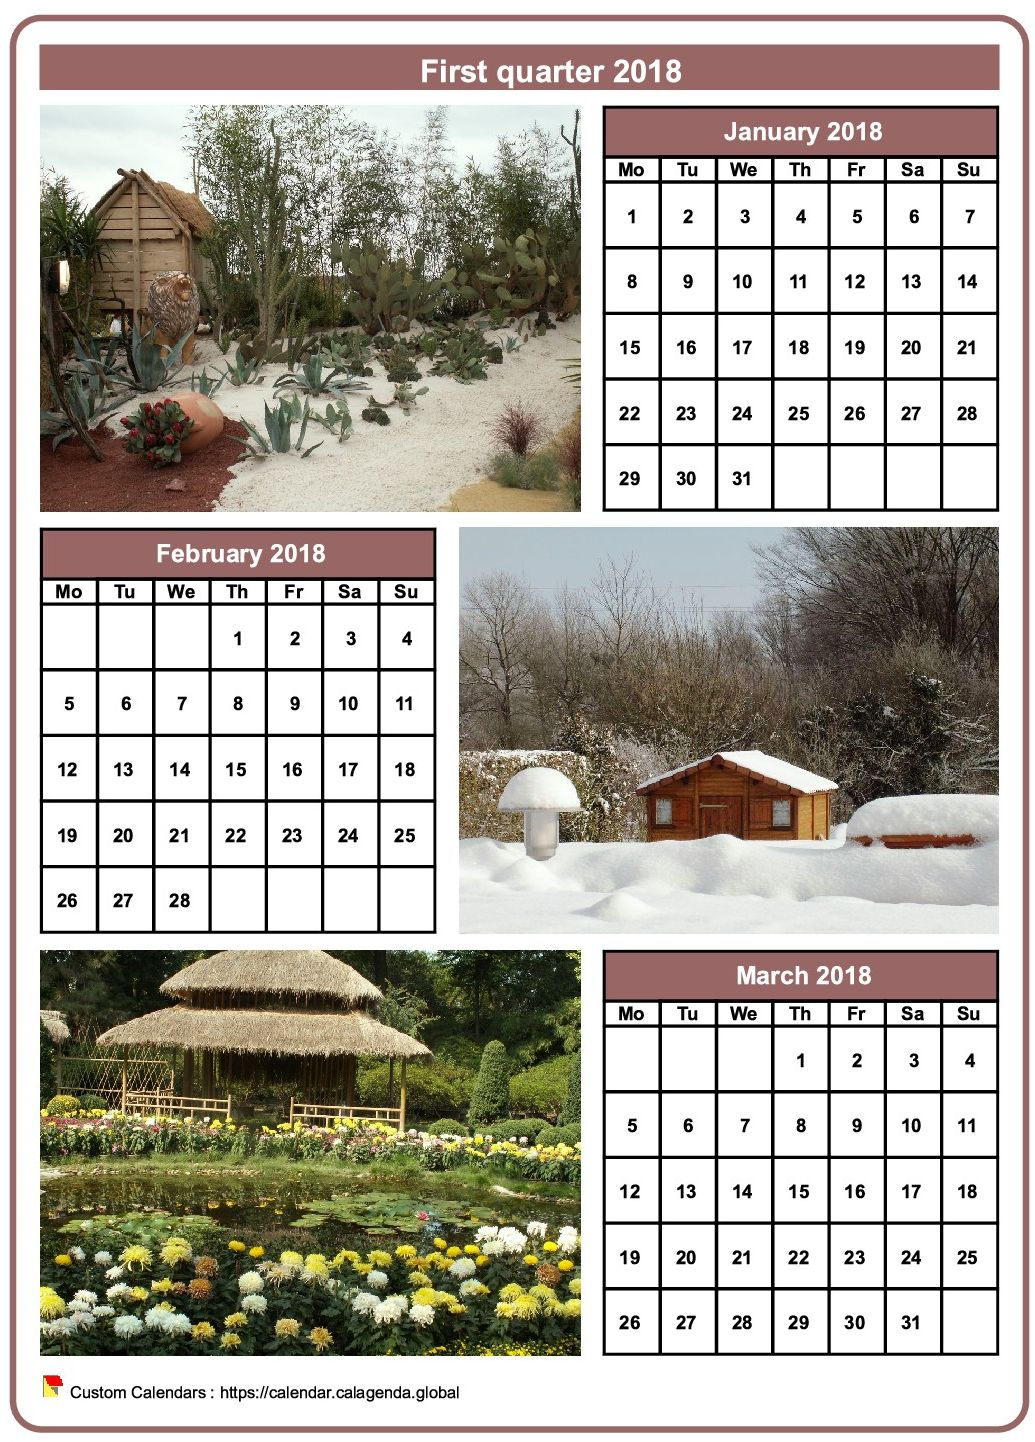 Calendar 2018 quarterly with a different photo every month